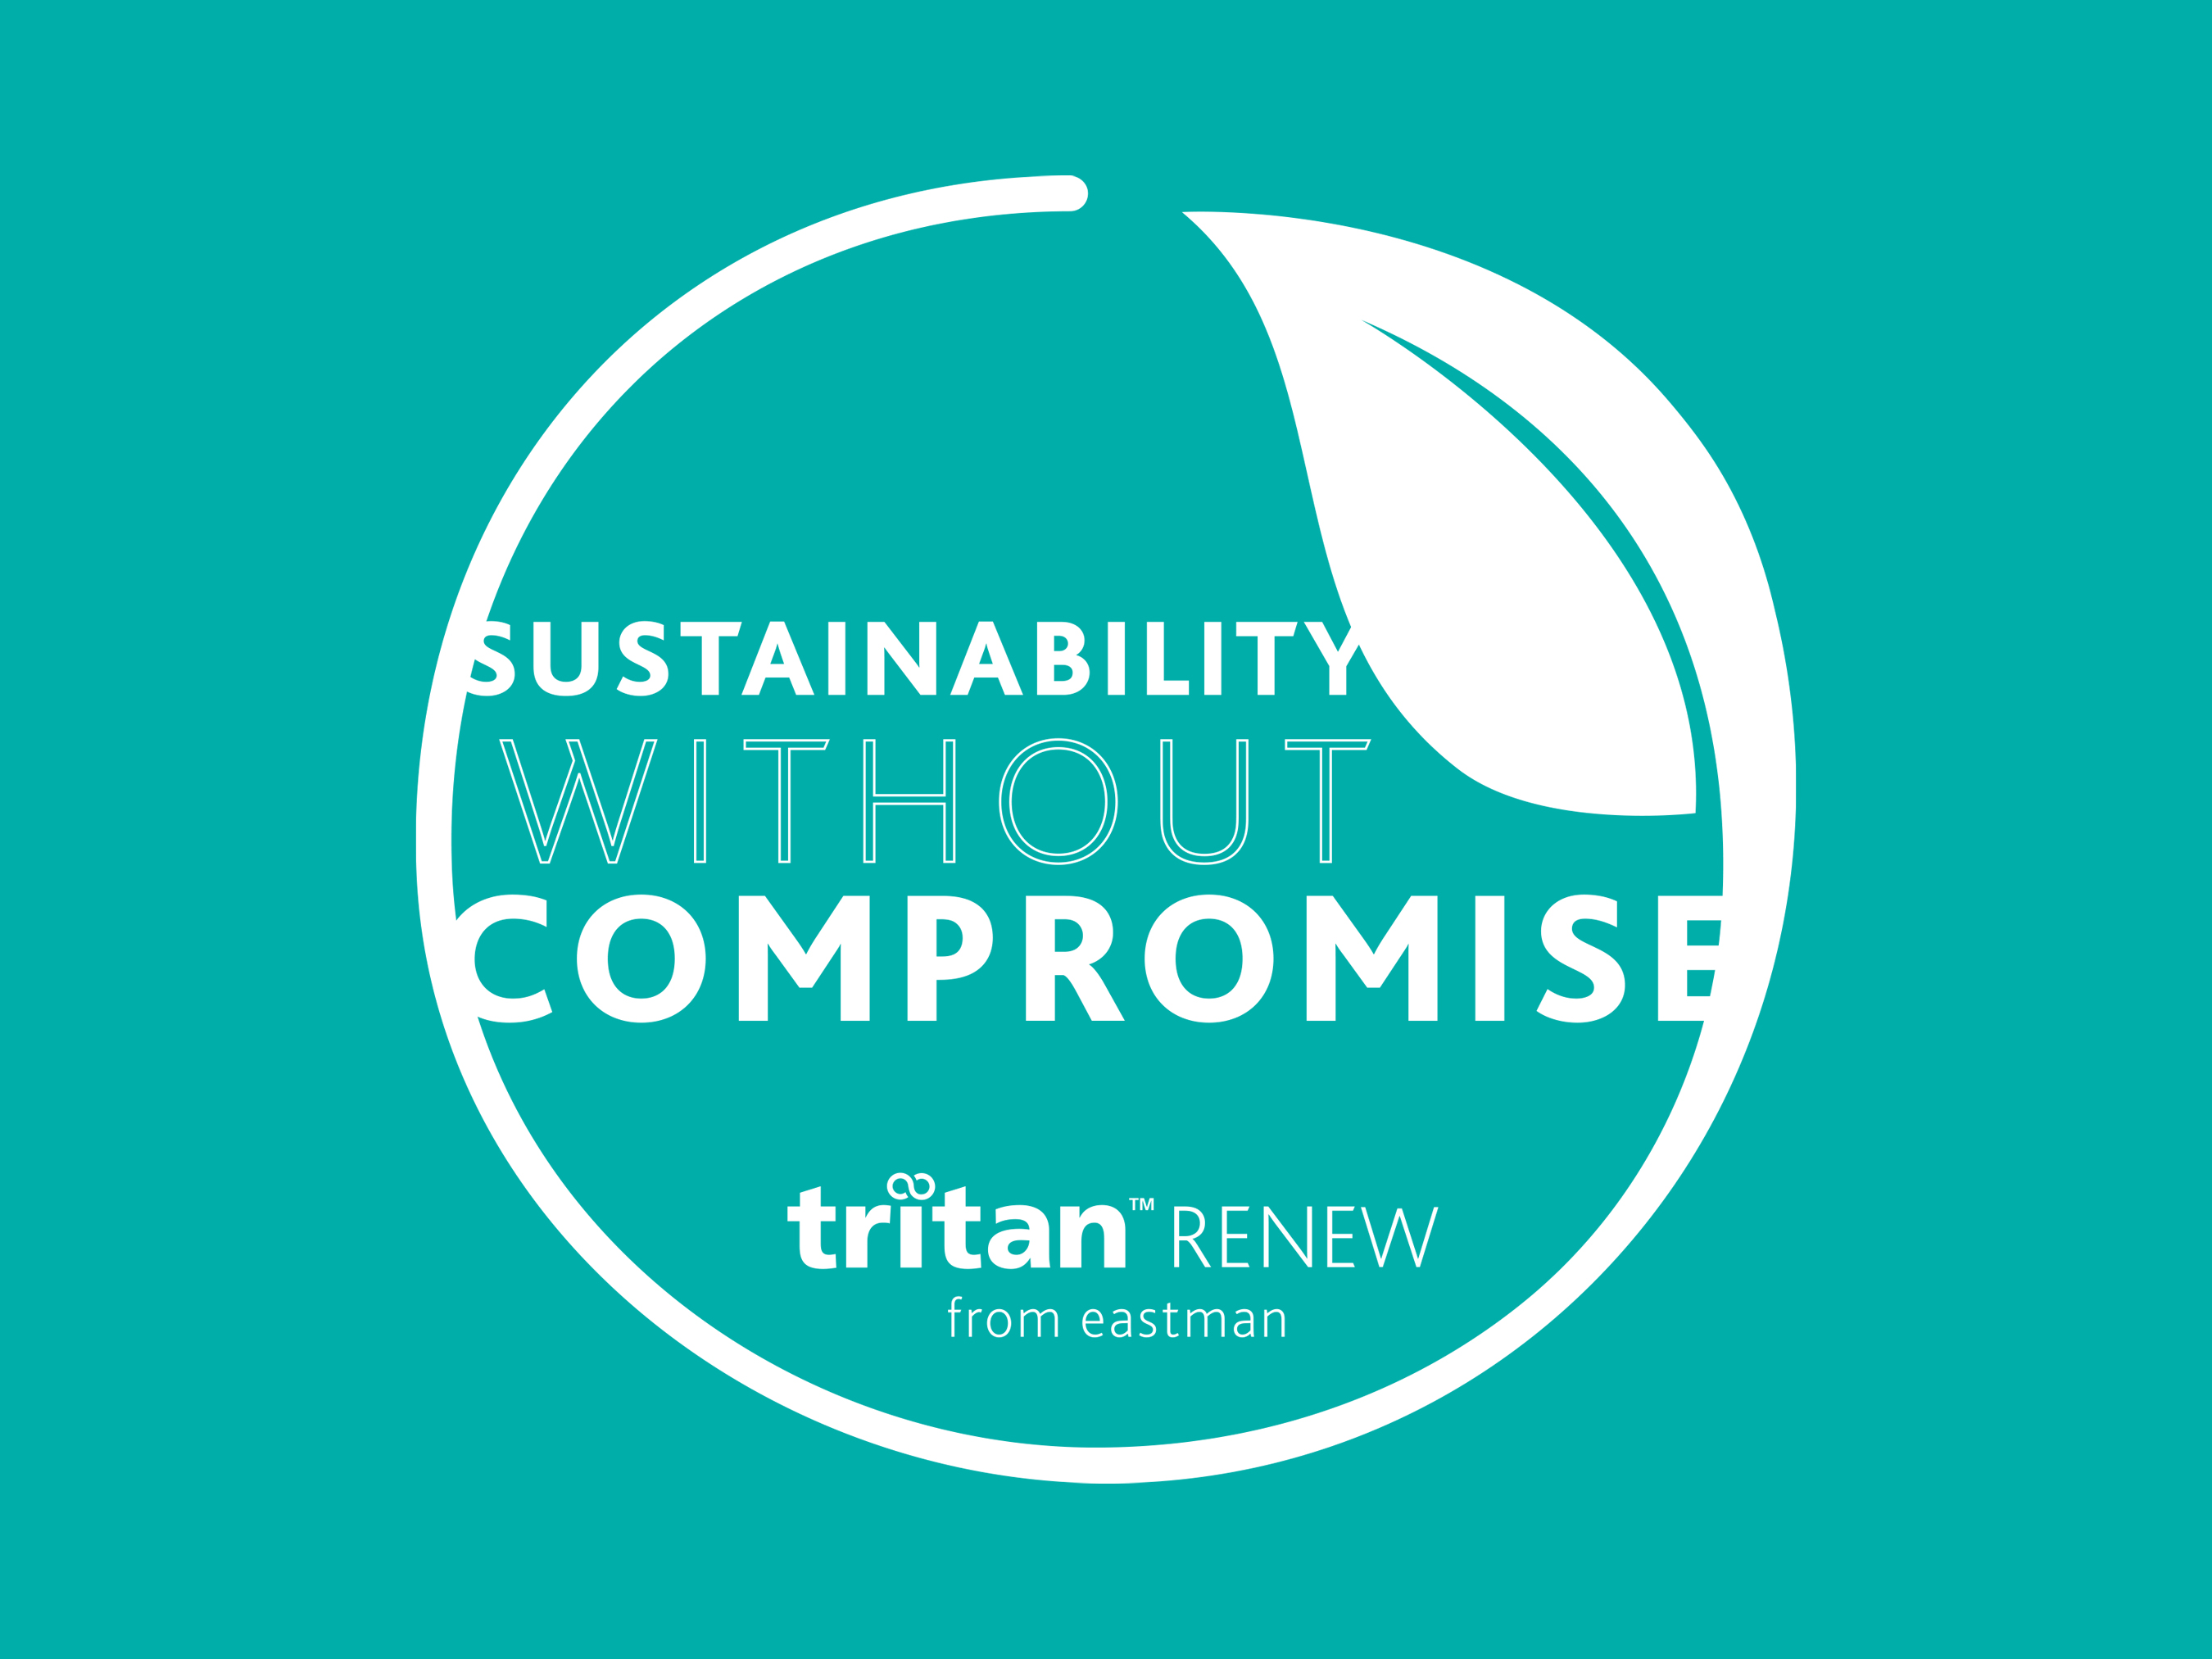 Tritan Renew offers sustainability without compromise, providing the same durability, performance and safety of original Tritan but now with up to 50% recycled content derived from waste plastic.